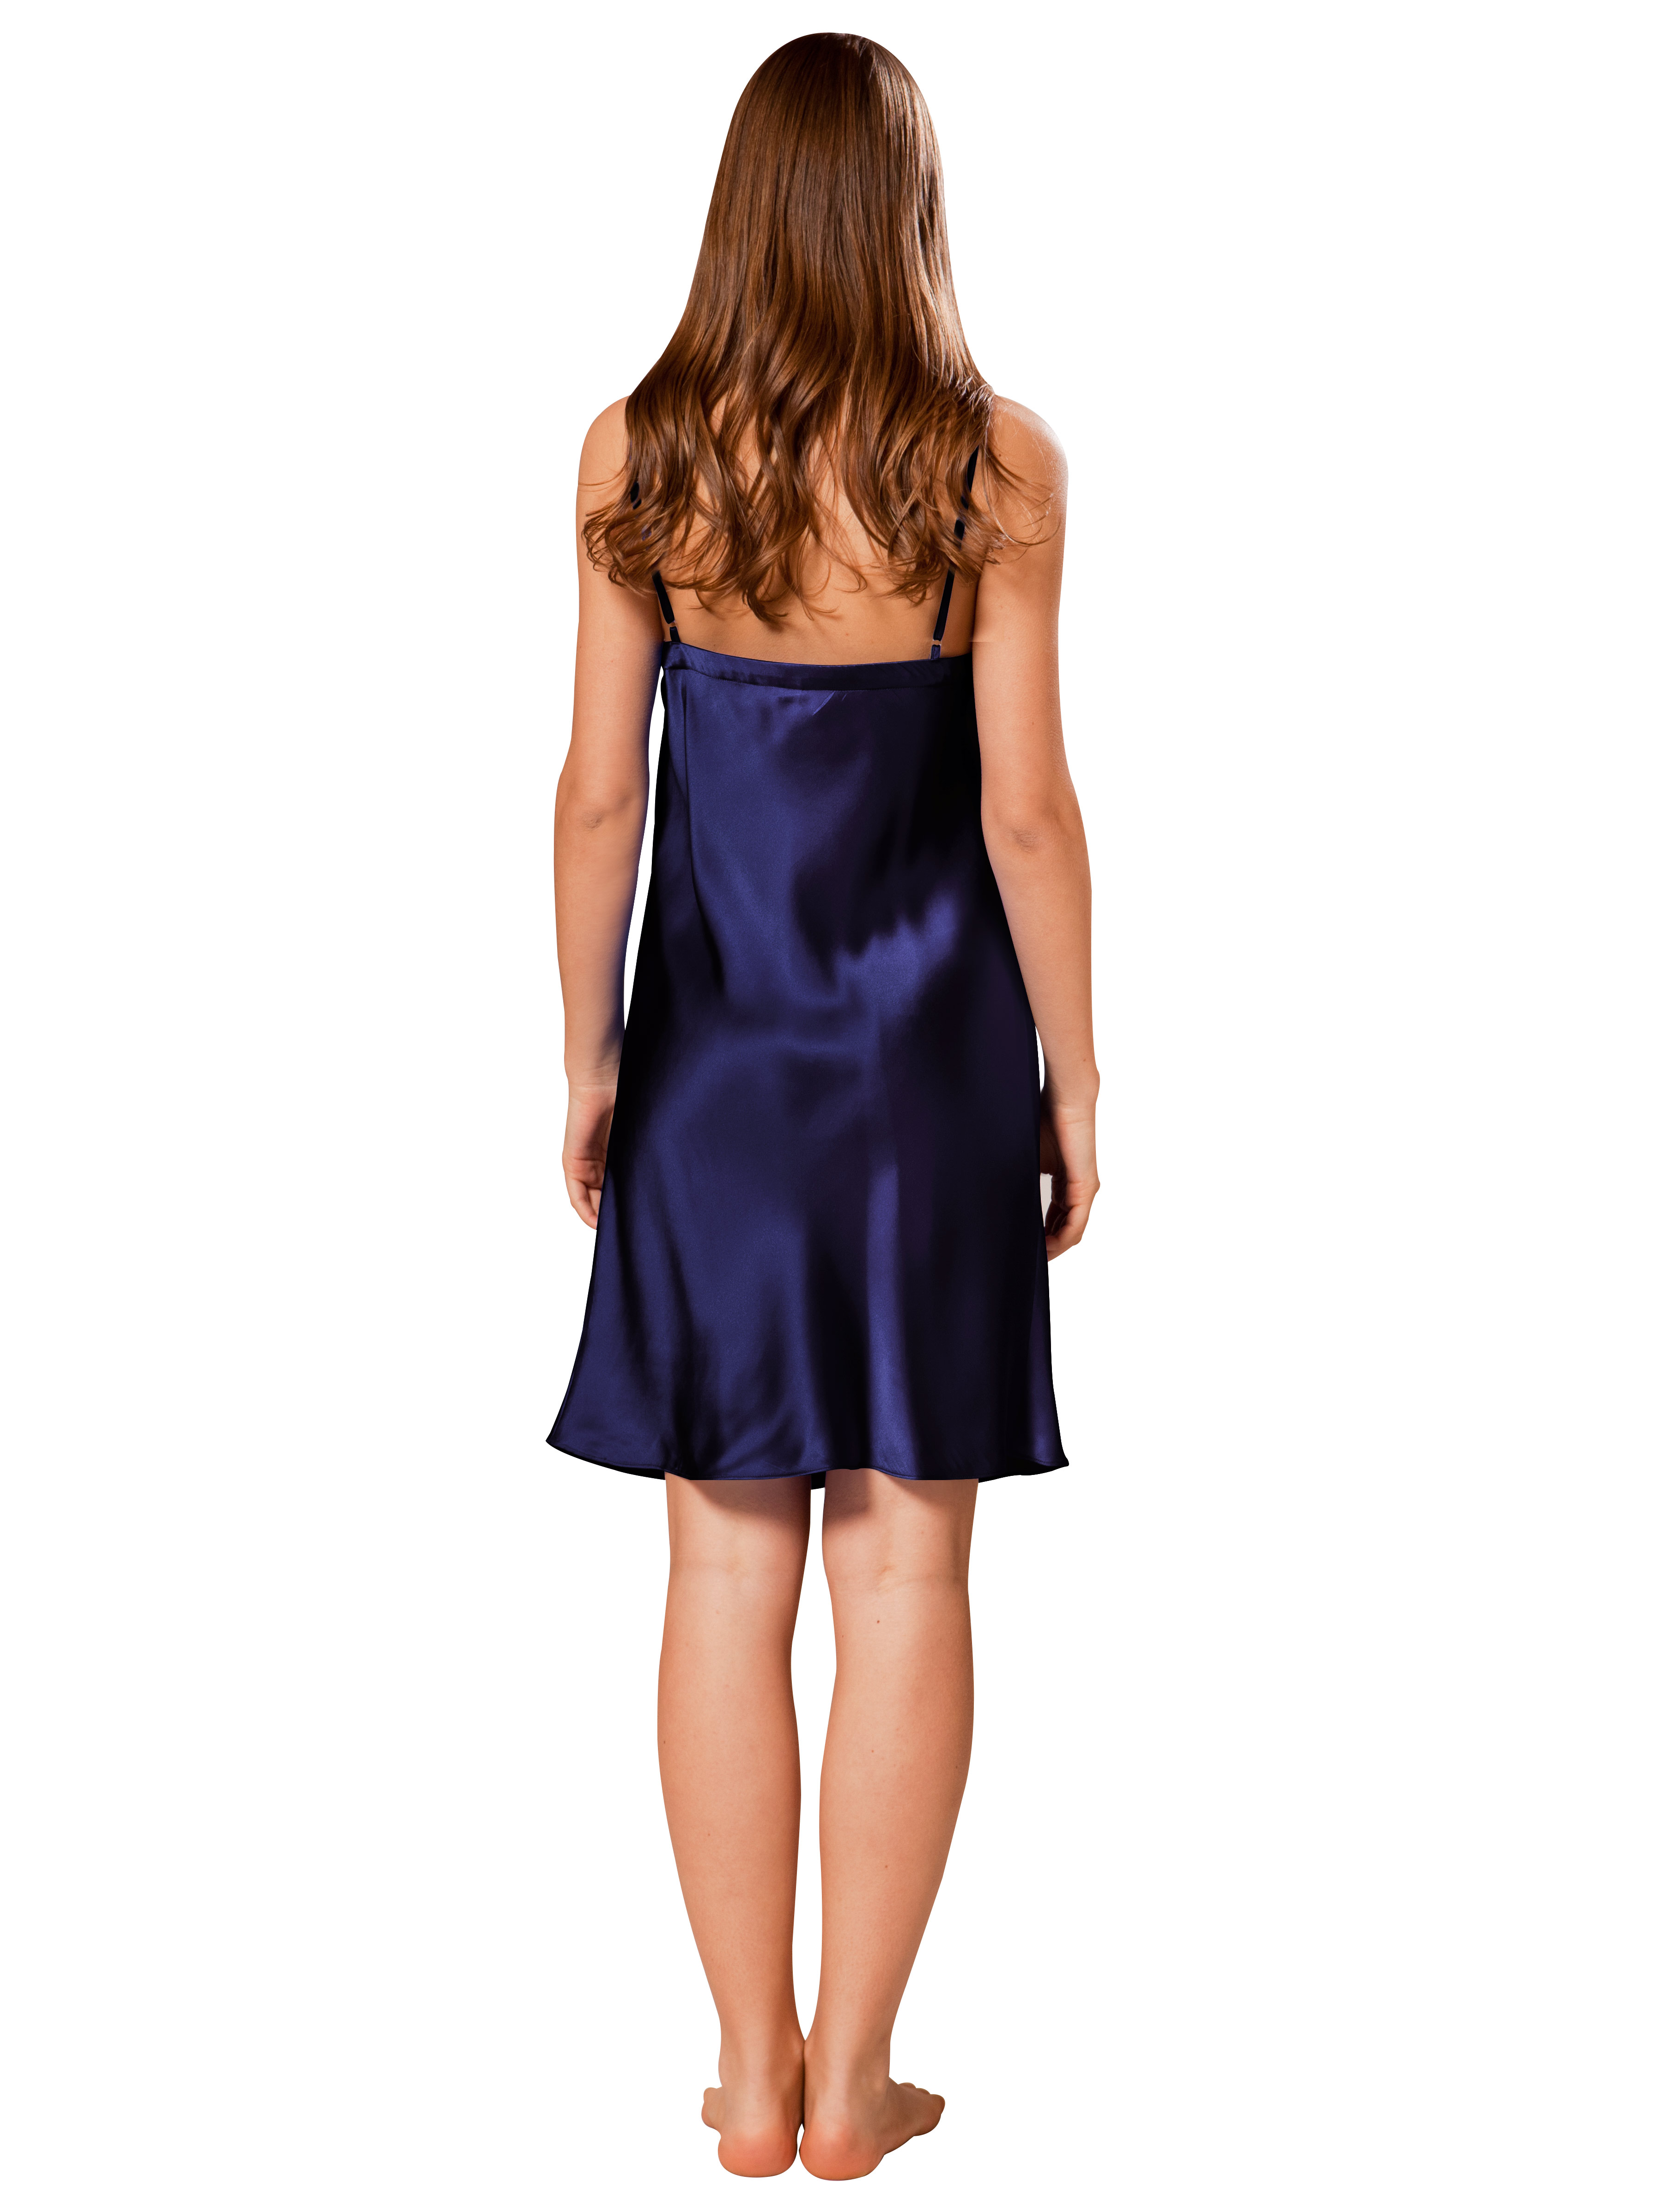 Mulberry Silk Slip For Women 85 Navy Blue